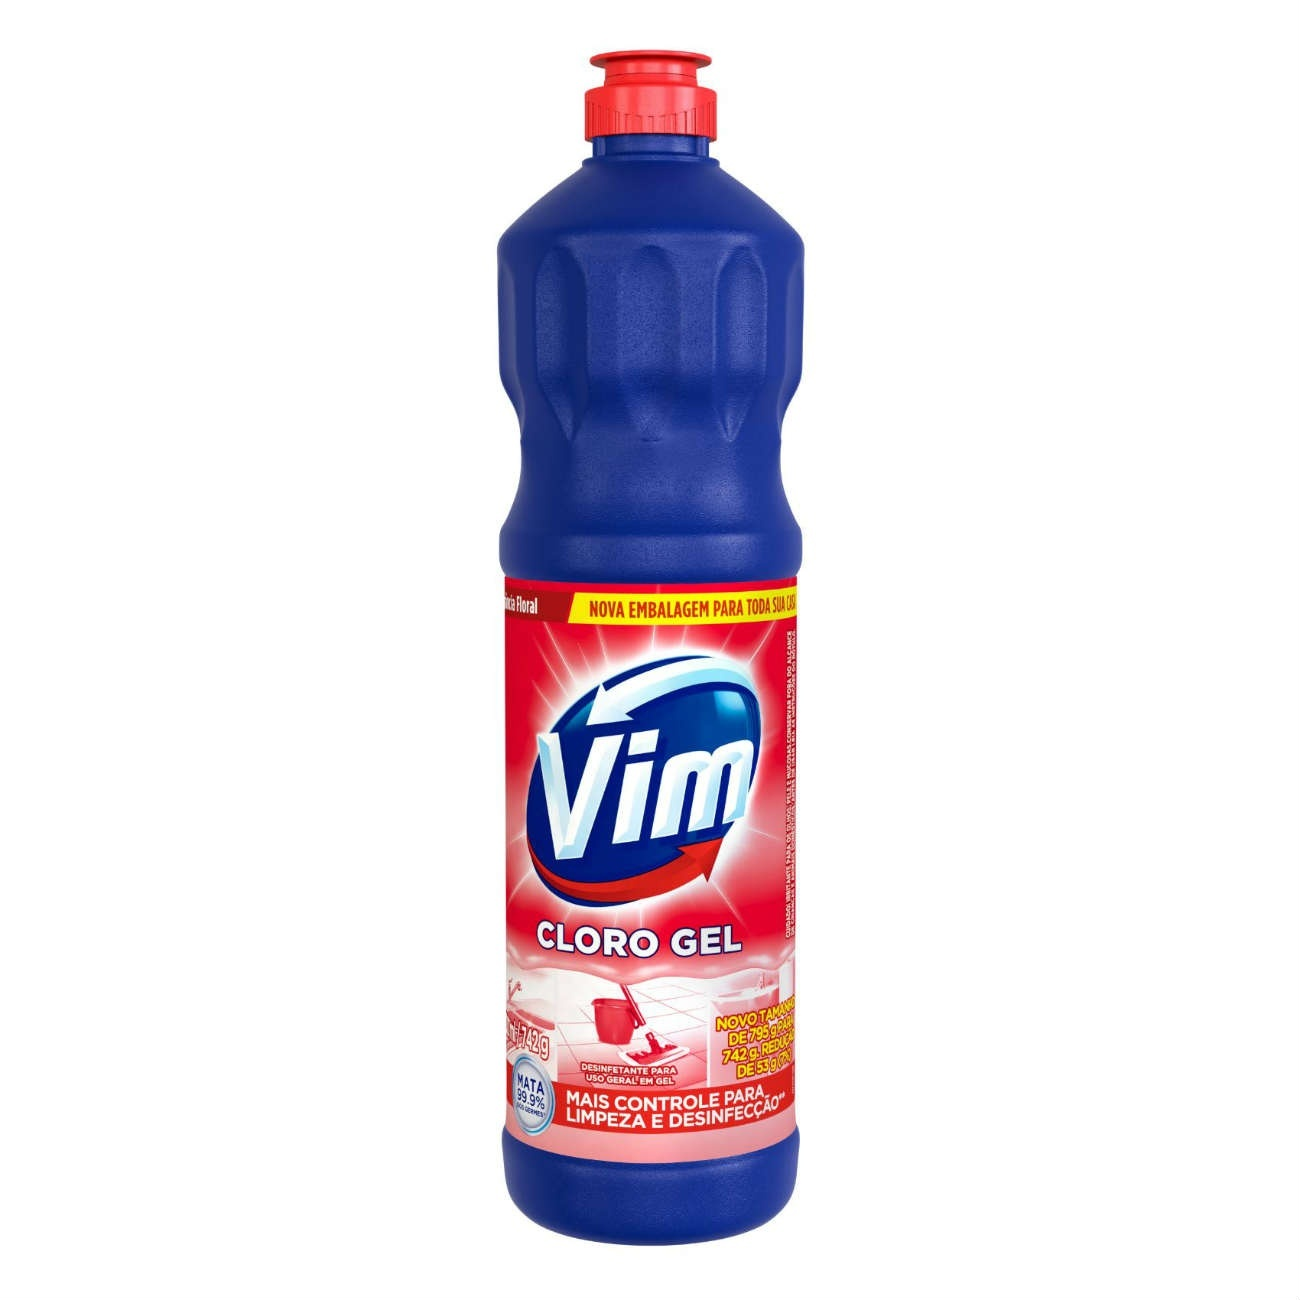 Cloro Gel Vim 700Ml Floral